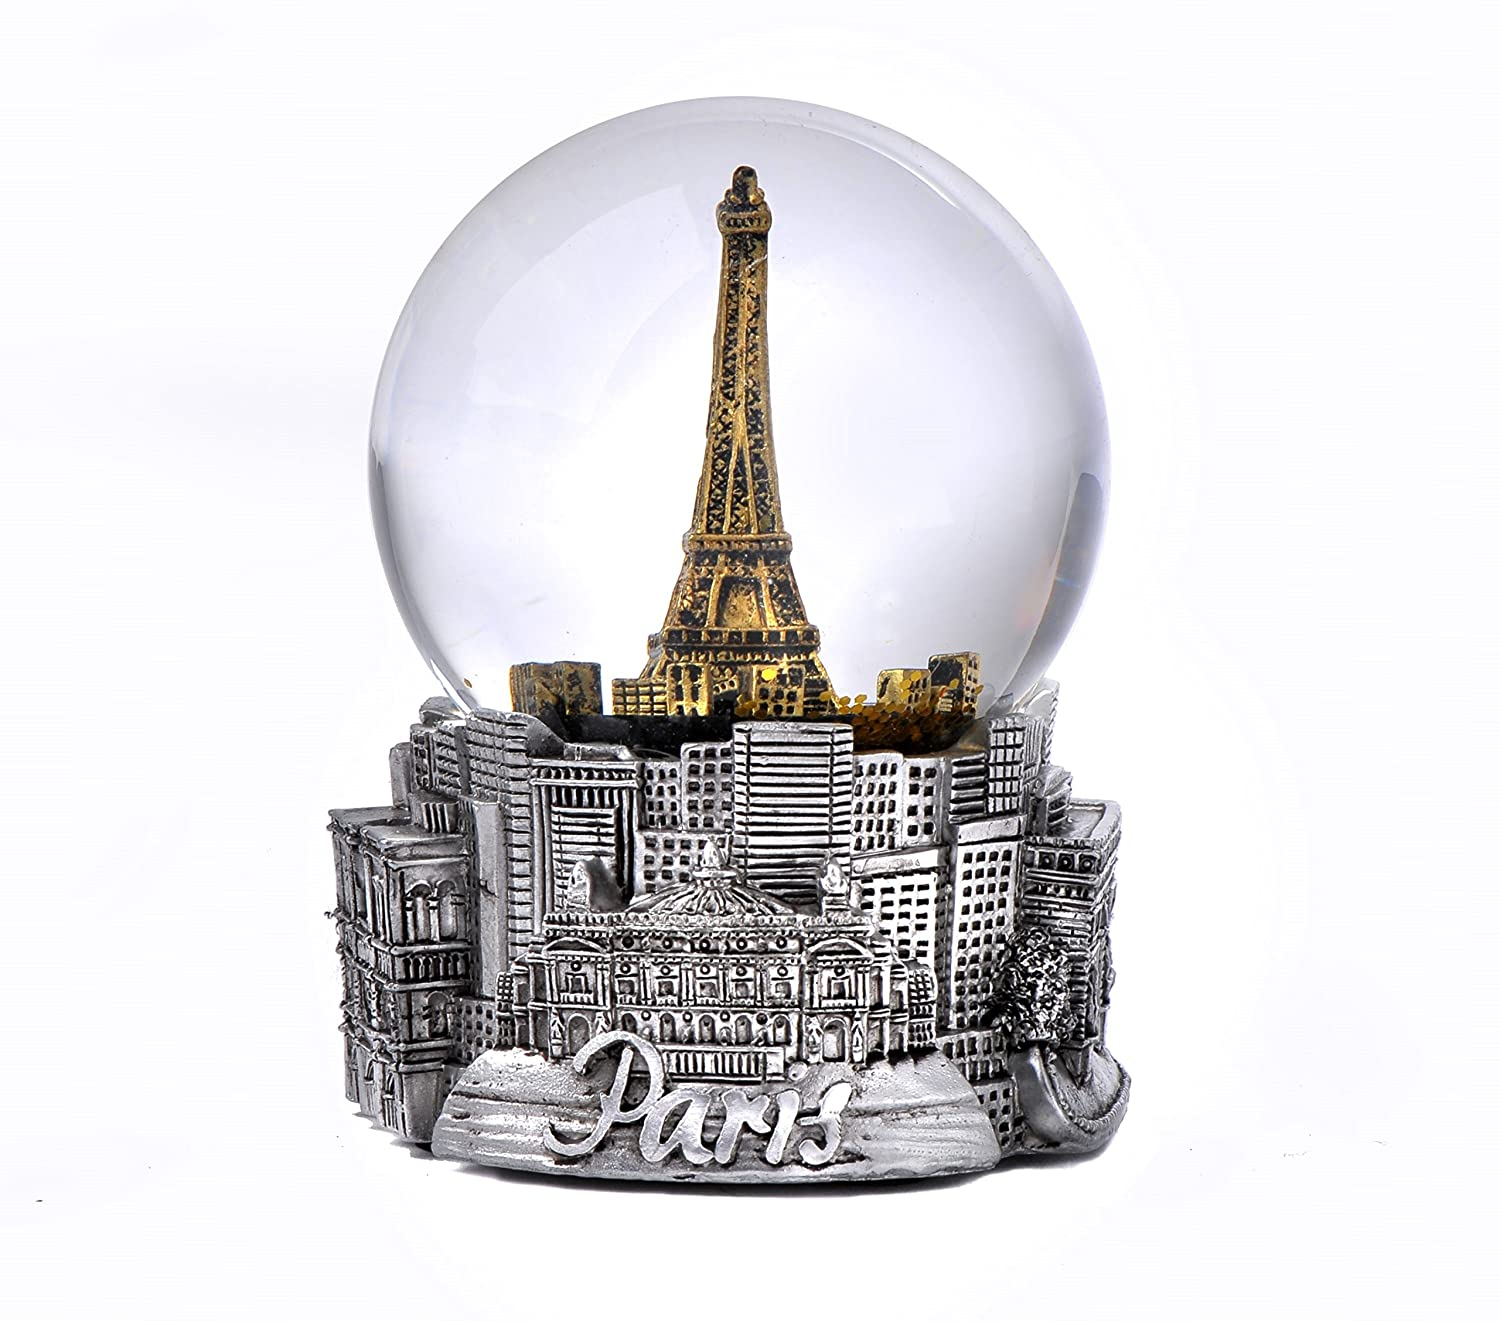 Paris France Eiffel Tower Snow Globe in Silver and Gold Exclusive 65mm Zizo